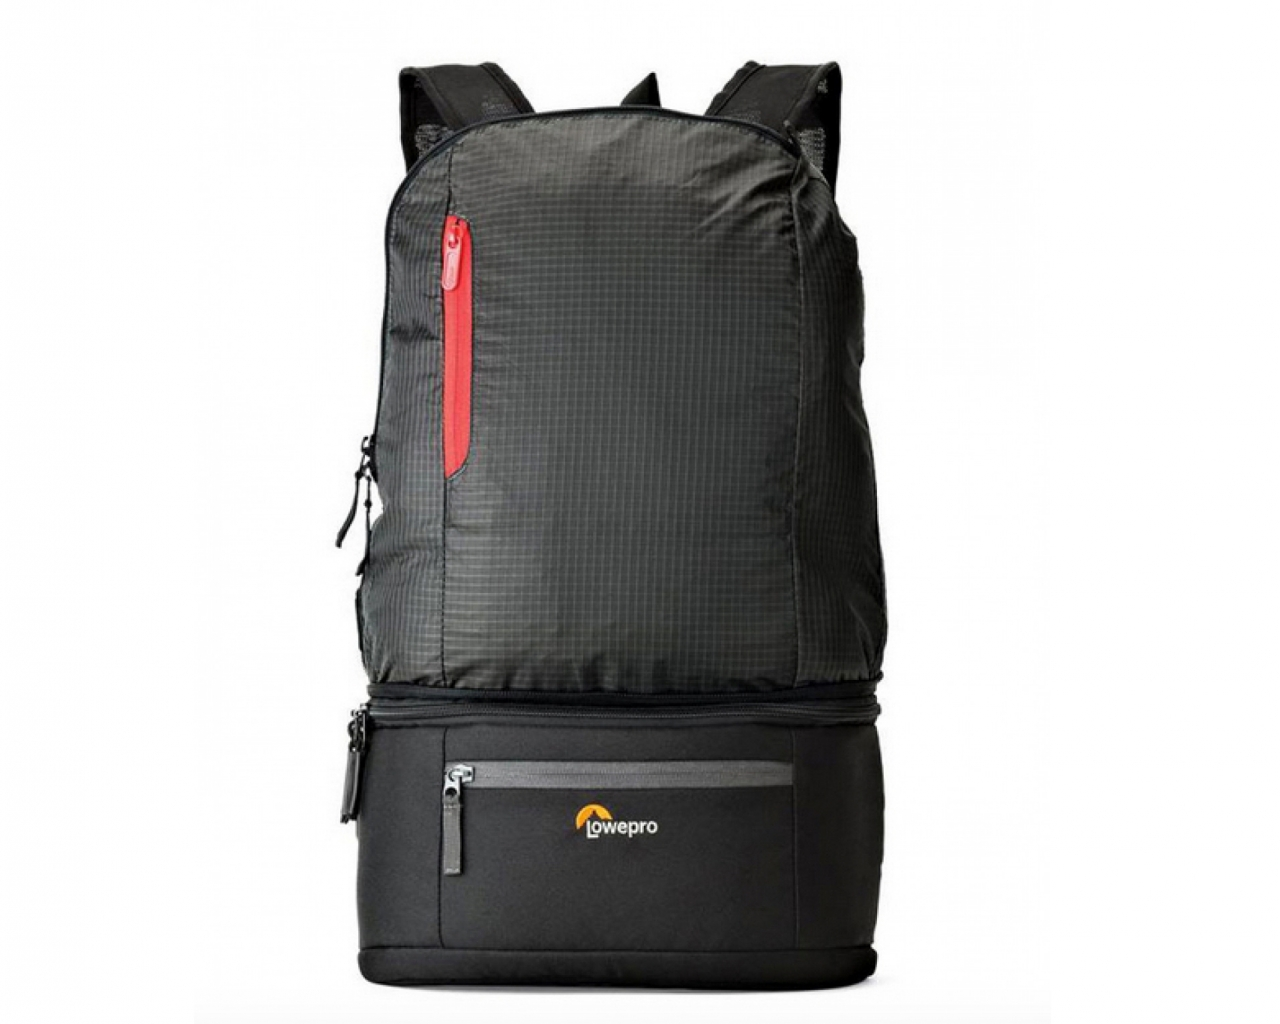 b33d3e4bdb Lowepro - Passport Duo (Black/Black) su Fotocolombo.it